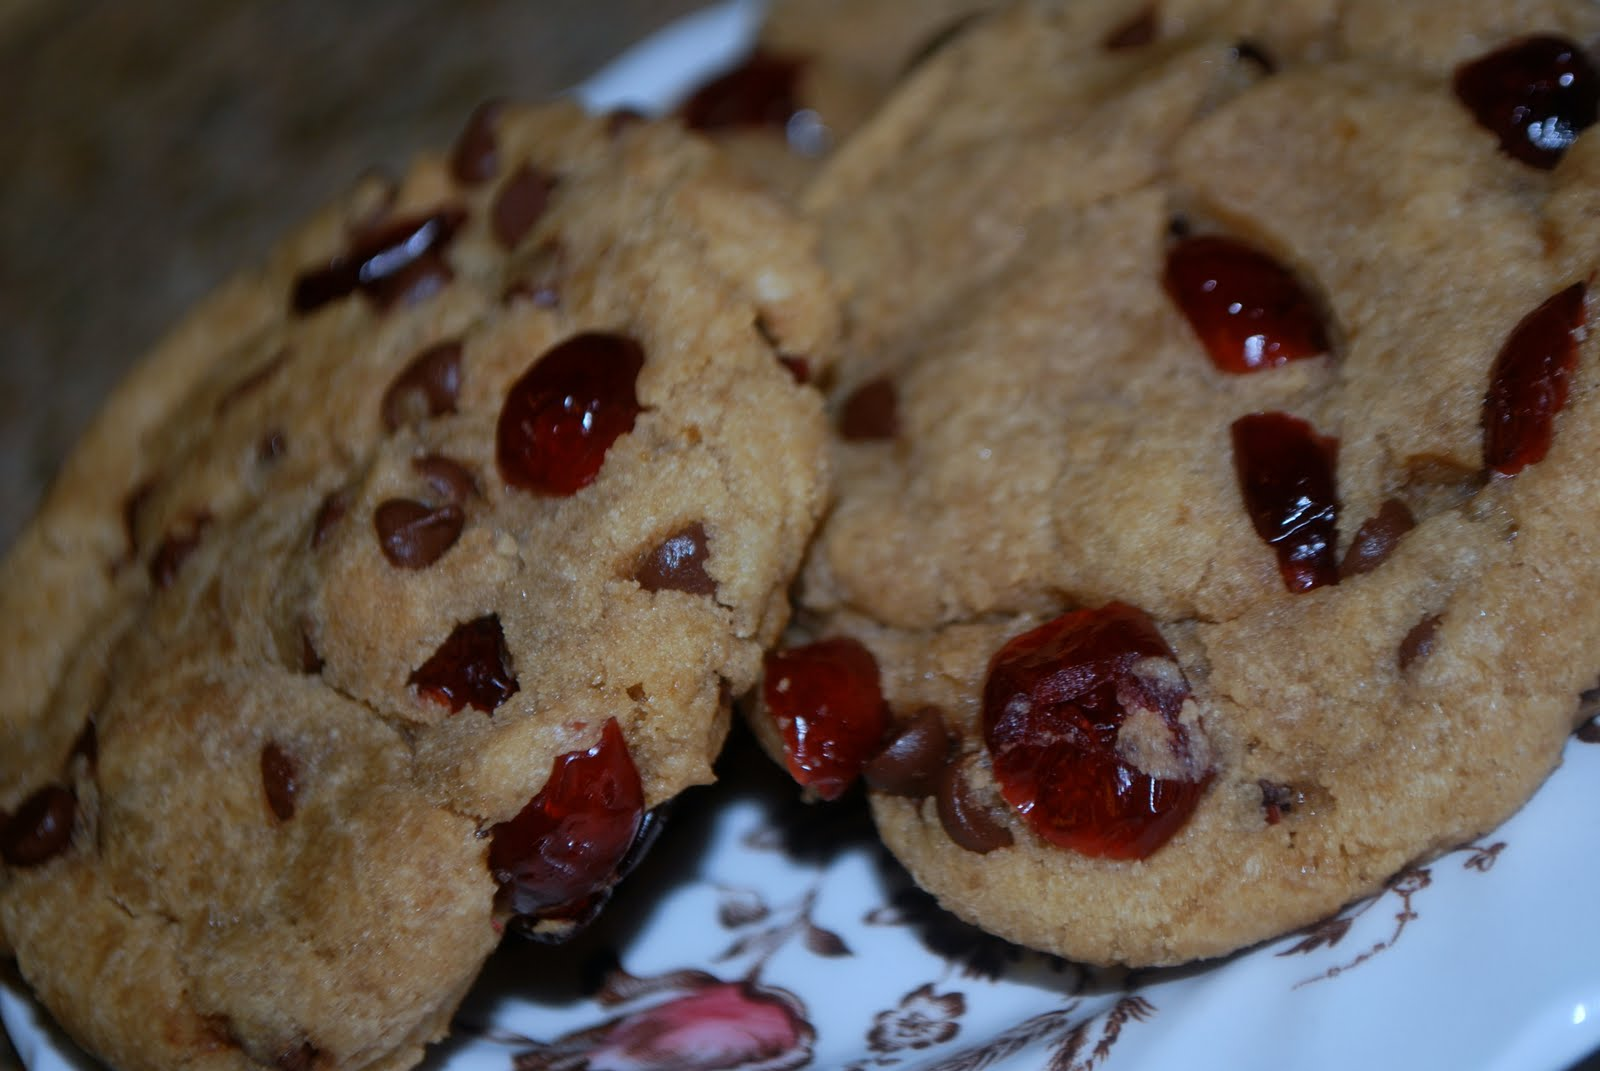 ... Fashionable: In The Kitchen: Chewy Cranberry Chocolate Chip Cookies